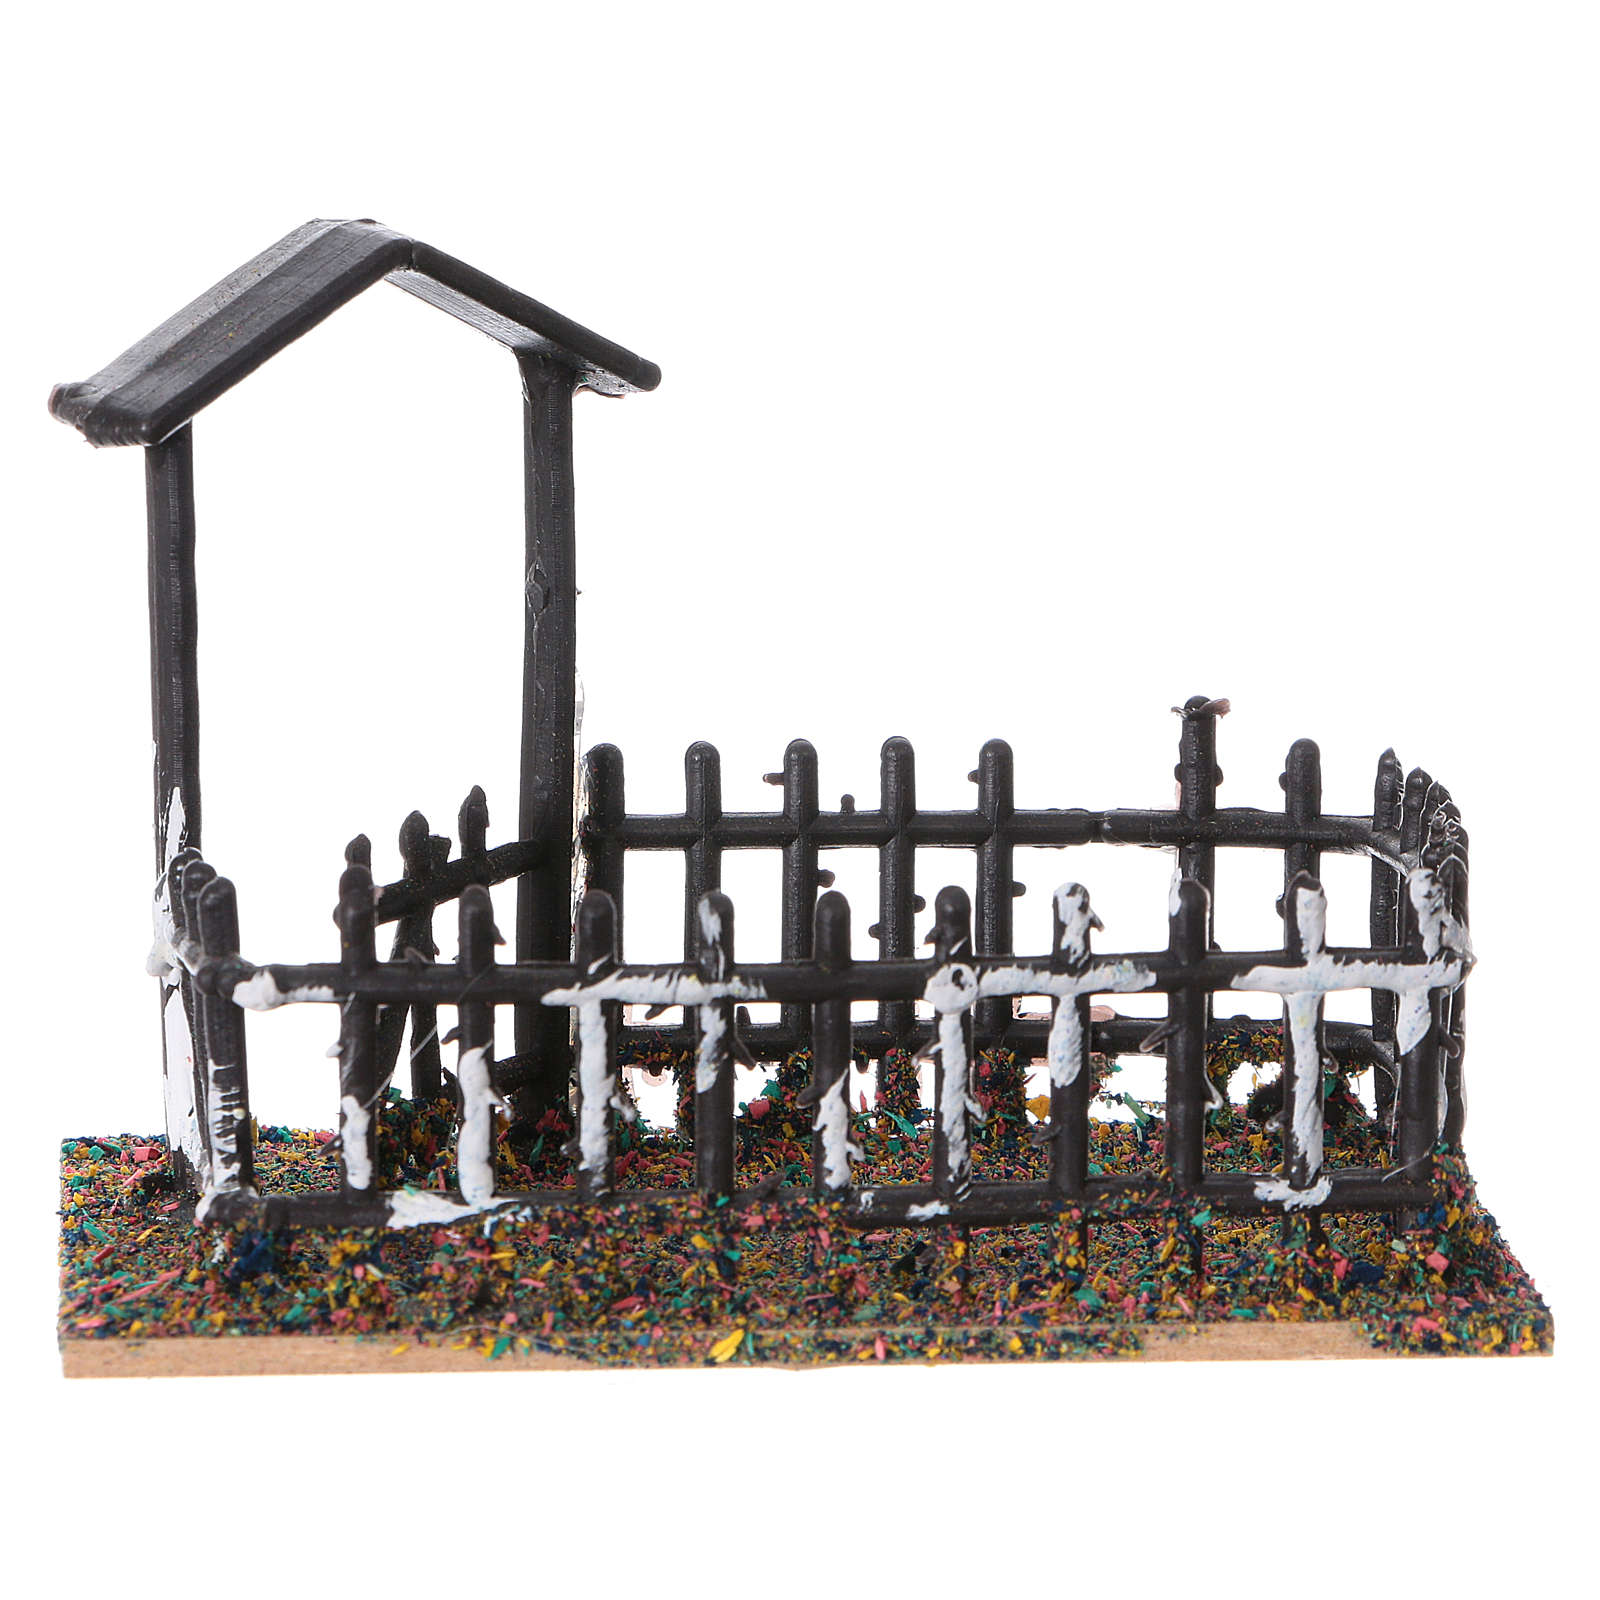 Animal fencing in plastic and cork 8x10x7 cm 3